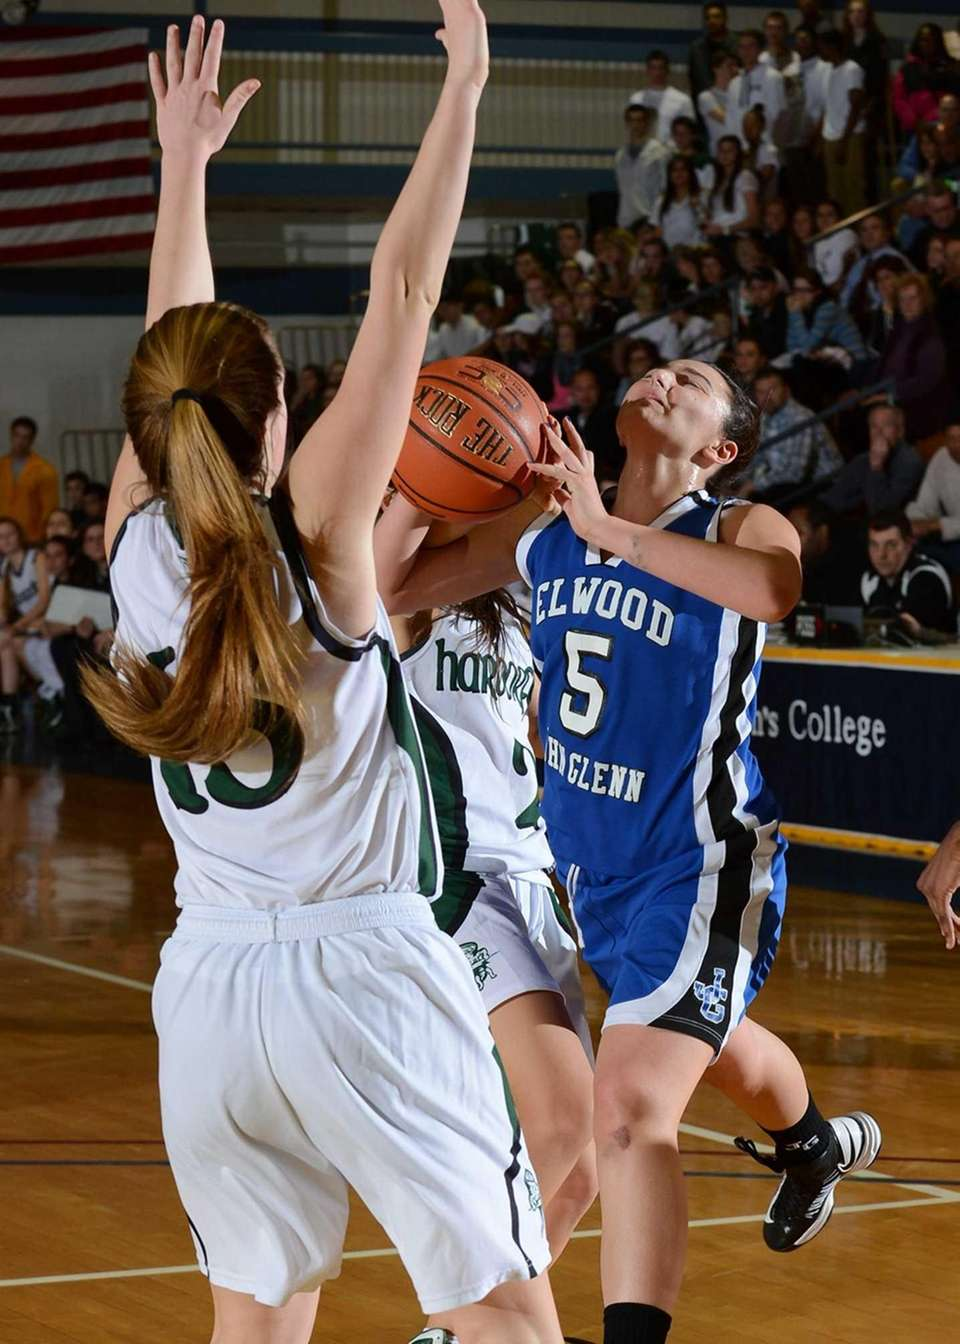 Glenn's Mackenzie Sivilli goes for the shot and